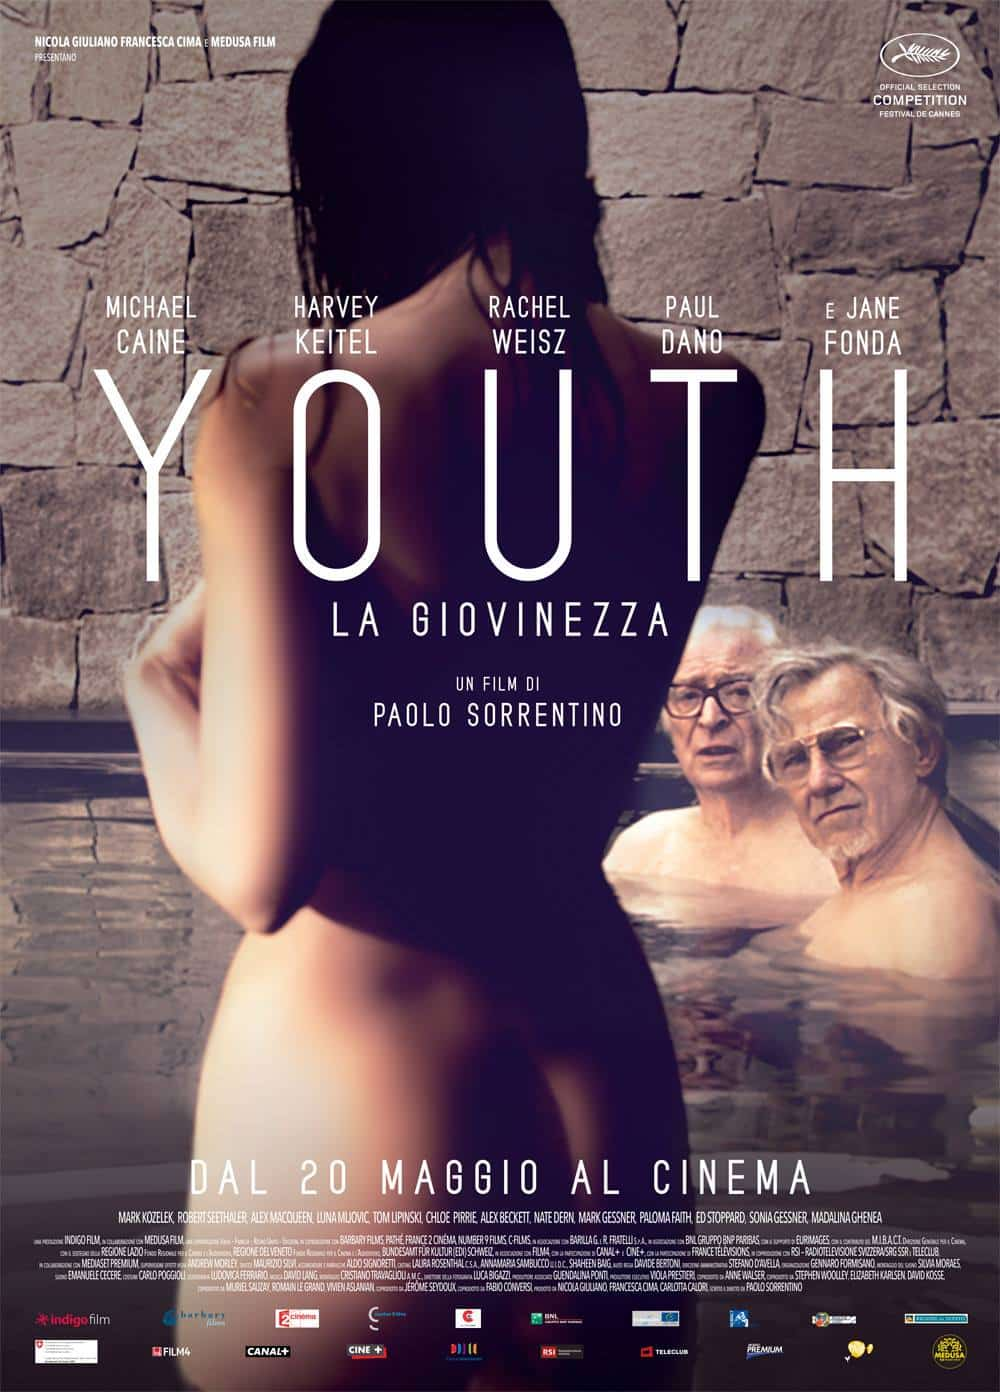 Youth 4